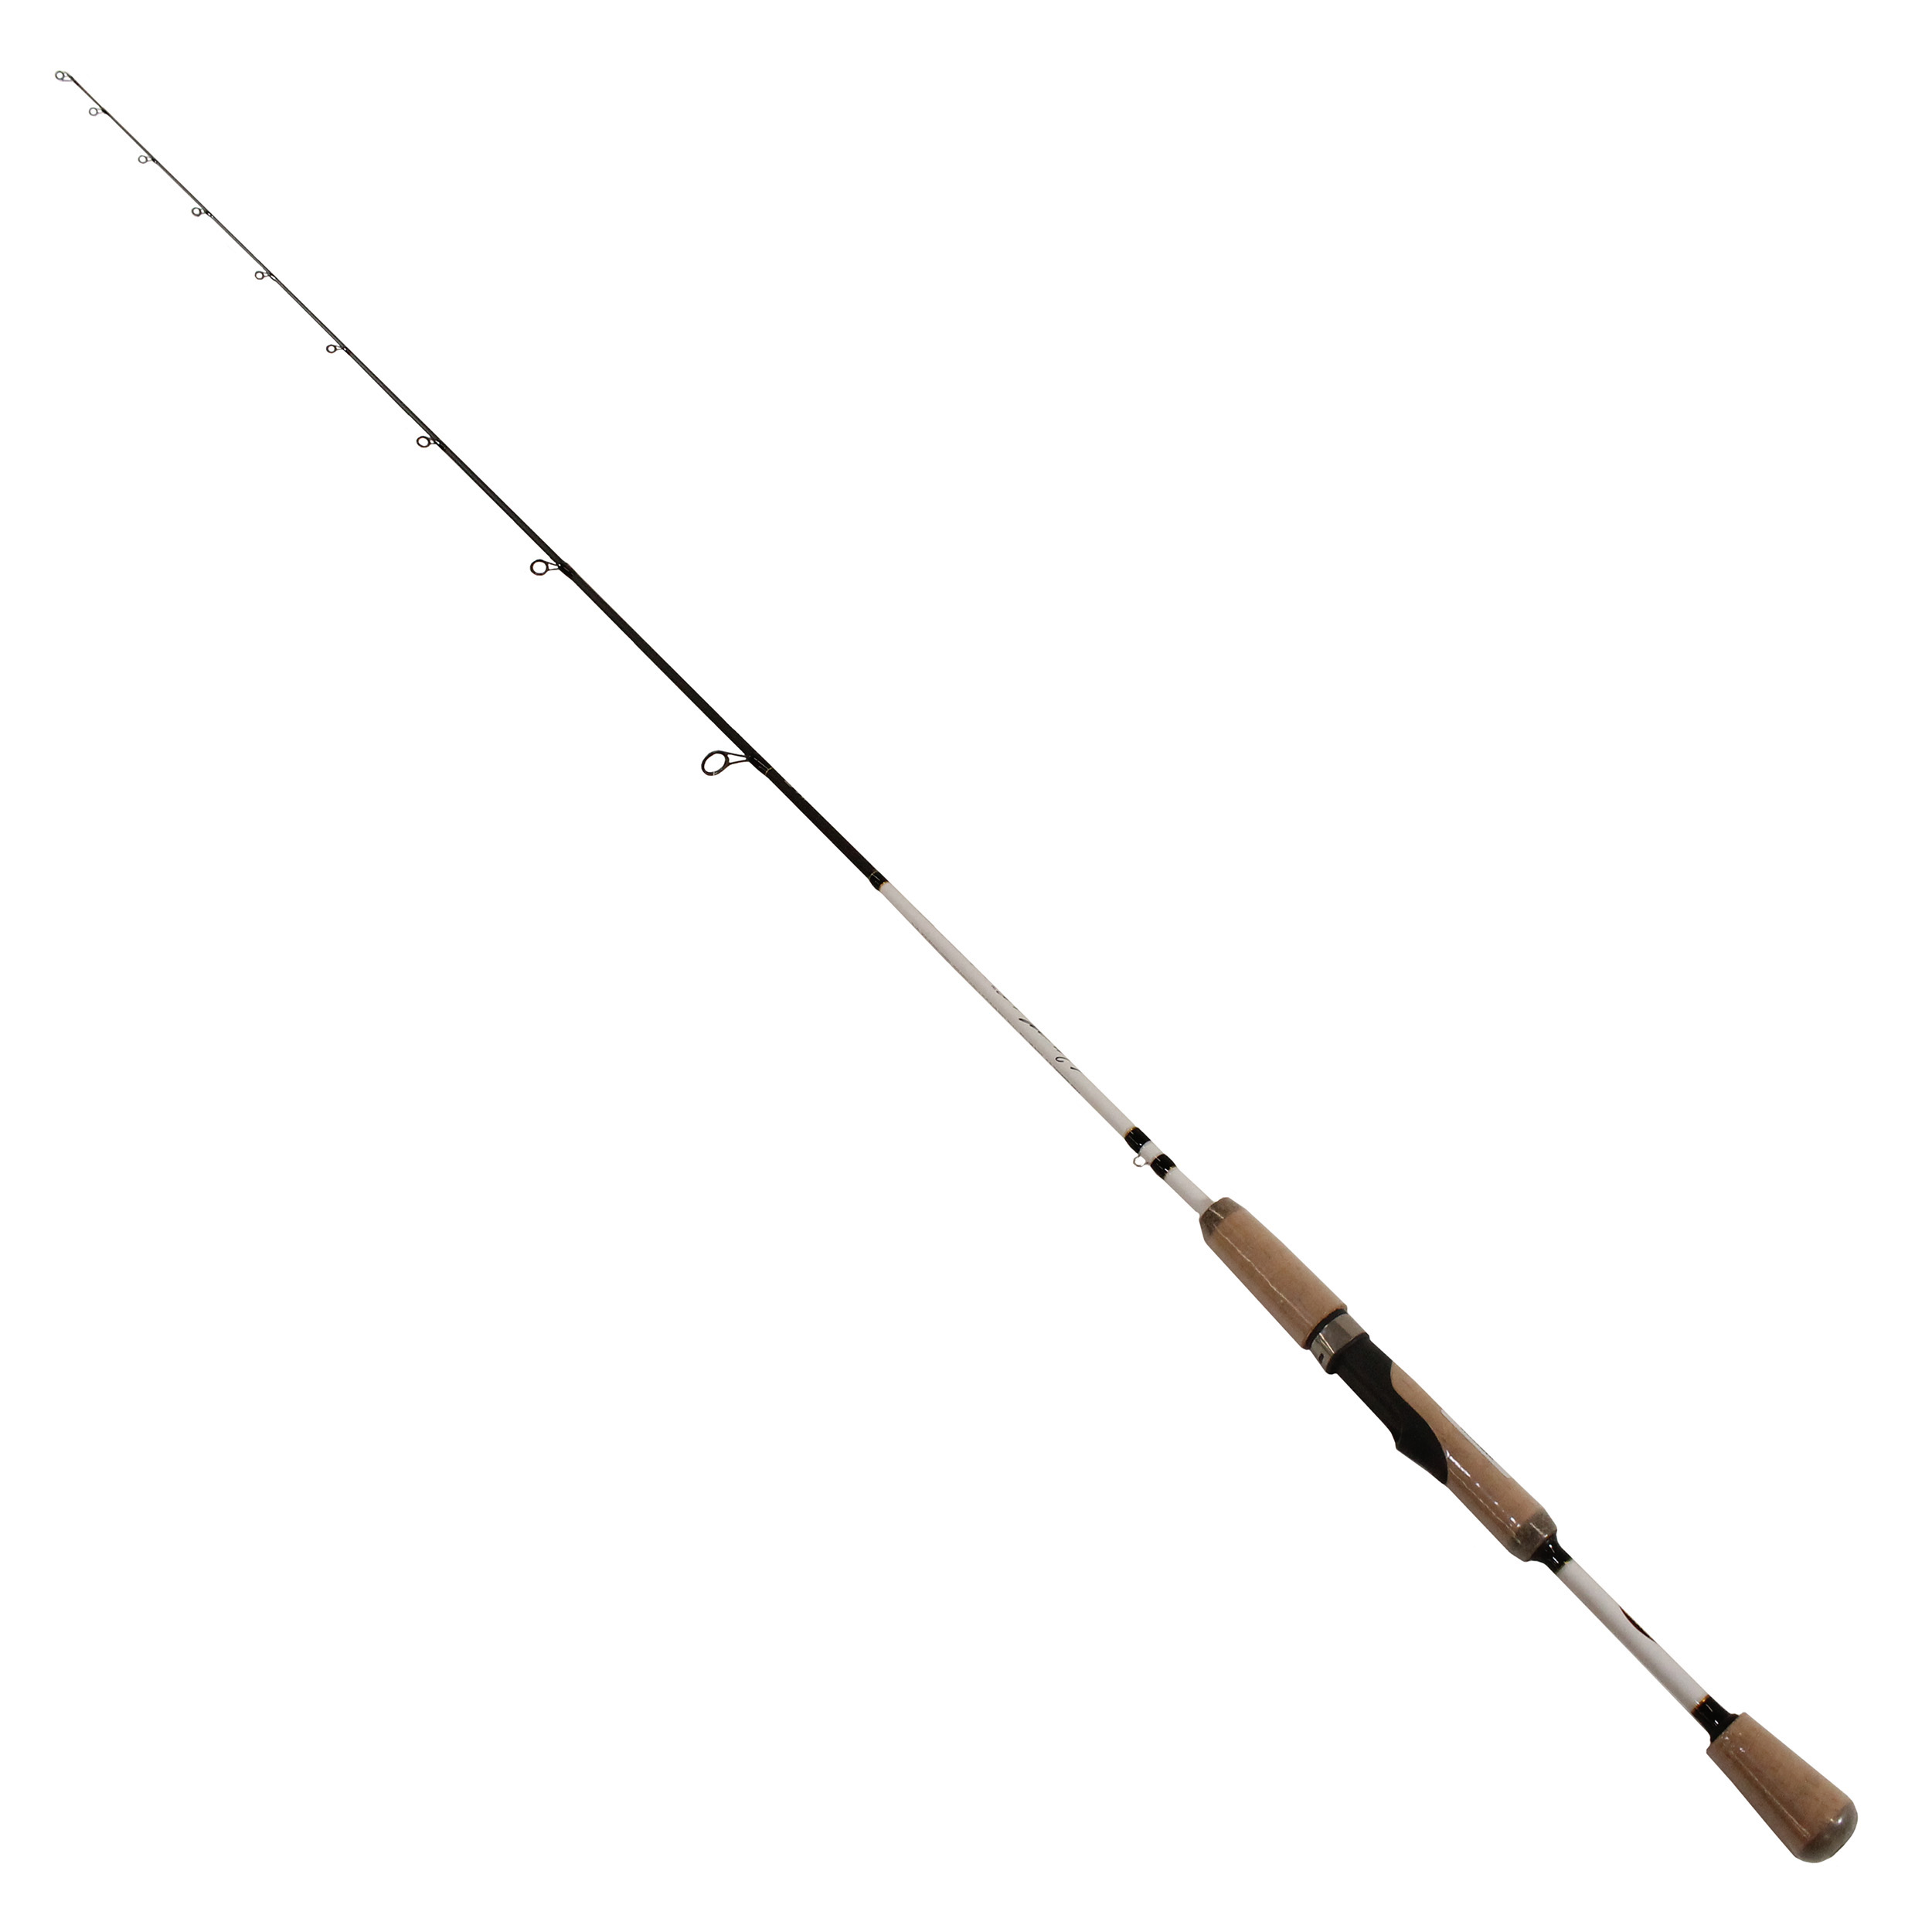 Lews Fishing Wally Marshall Pro Rod 7', 1 Piece, Medium/Light Power, Medium...